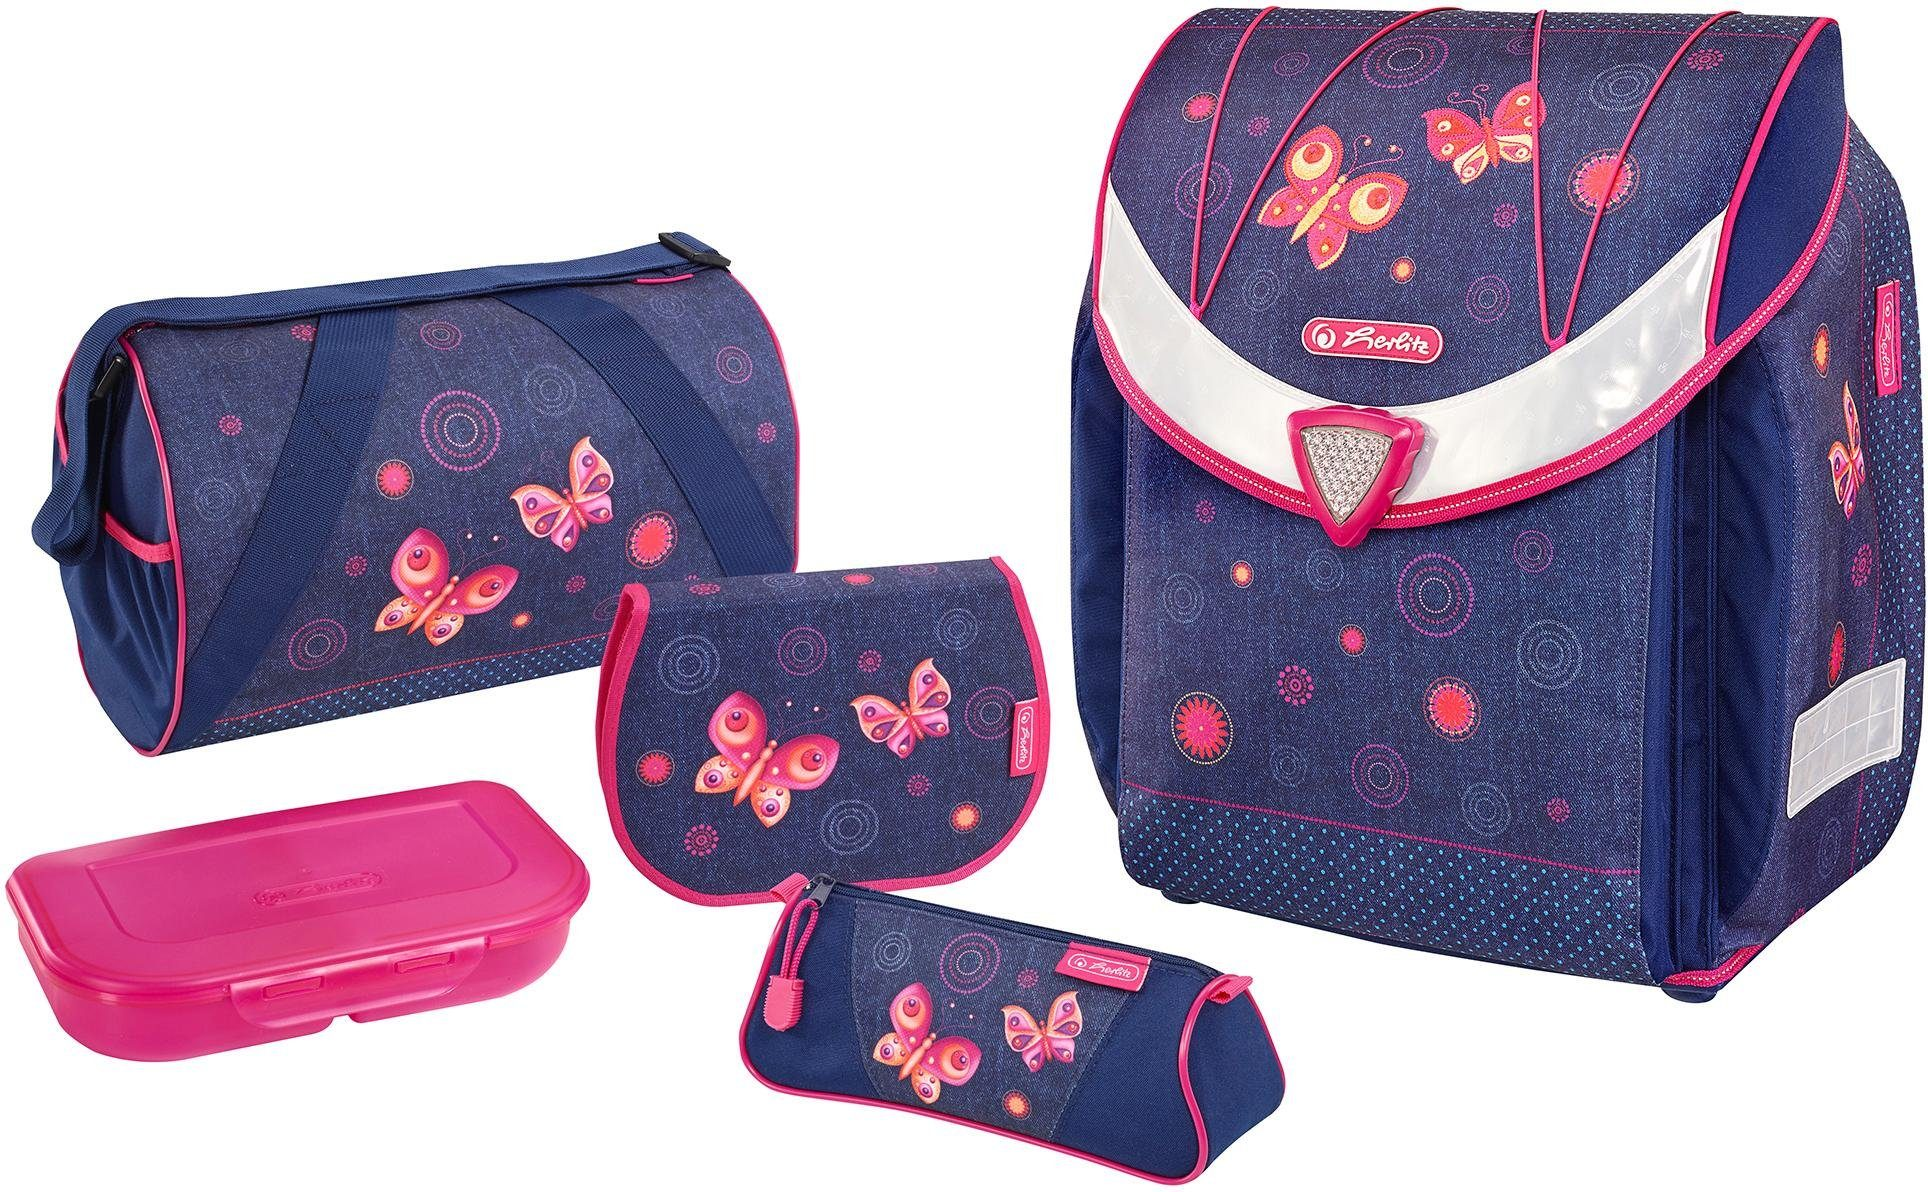 Herlitz Schulranzen Set, 5-tlg., »Flexi Plus, Butterfly Dreams«